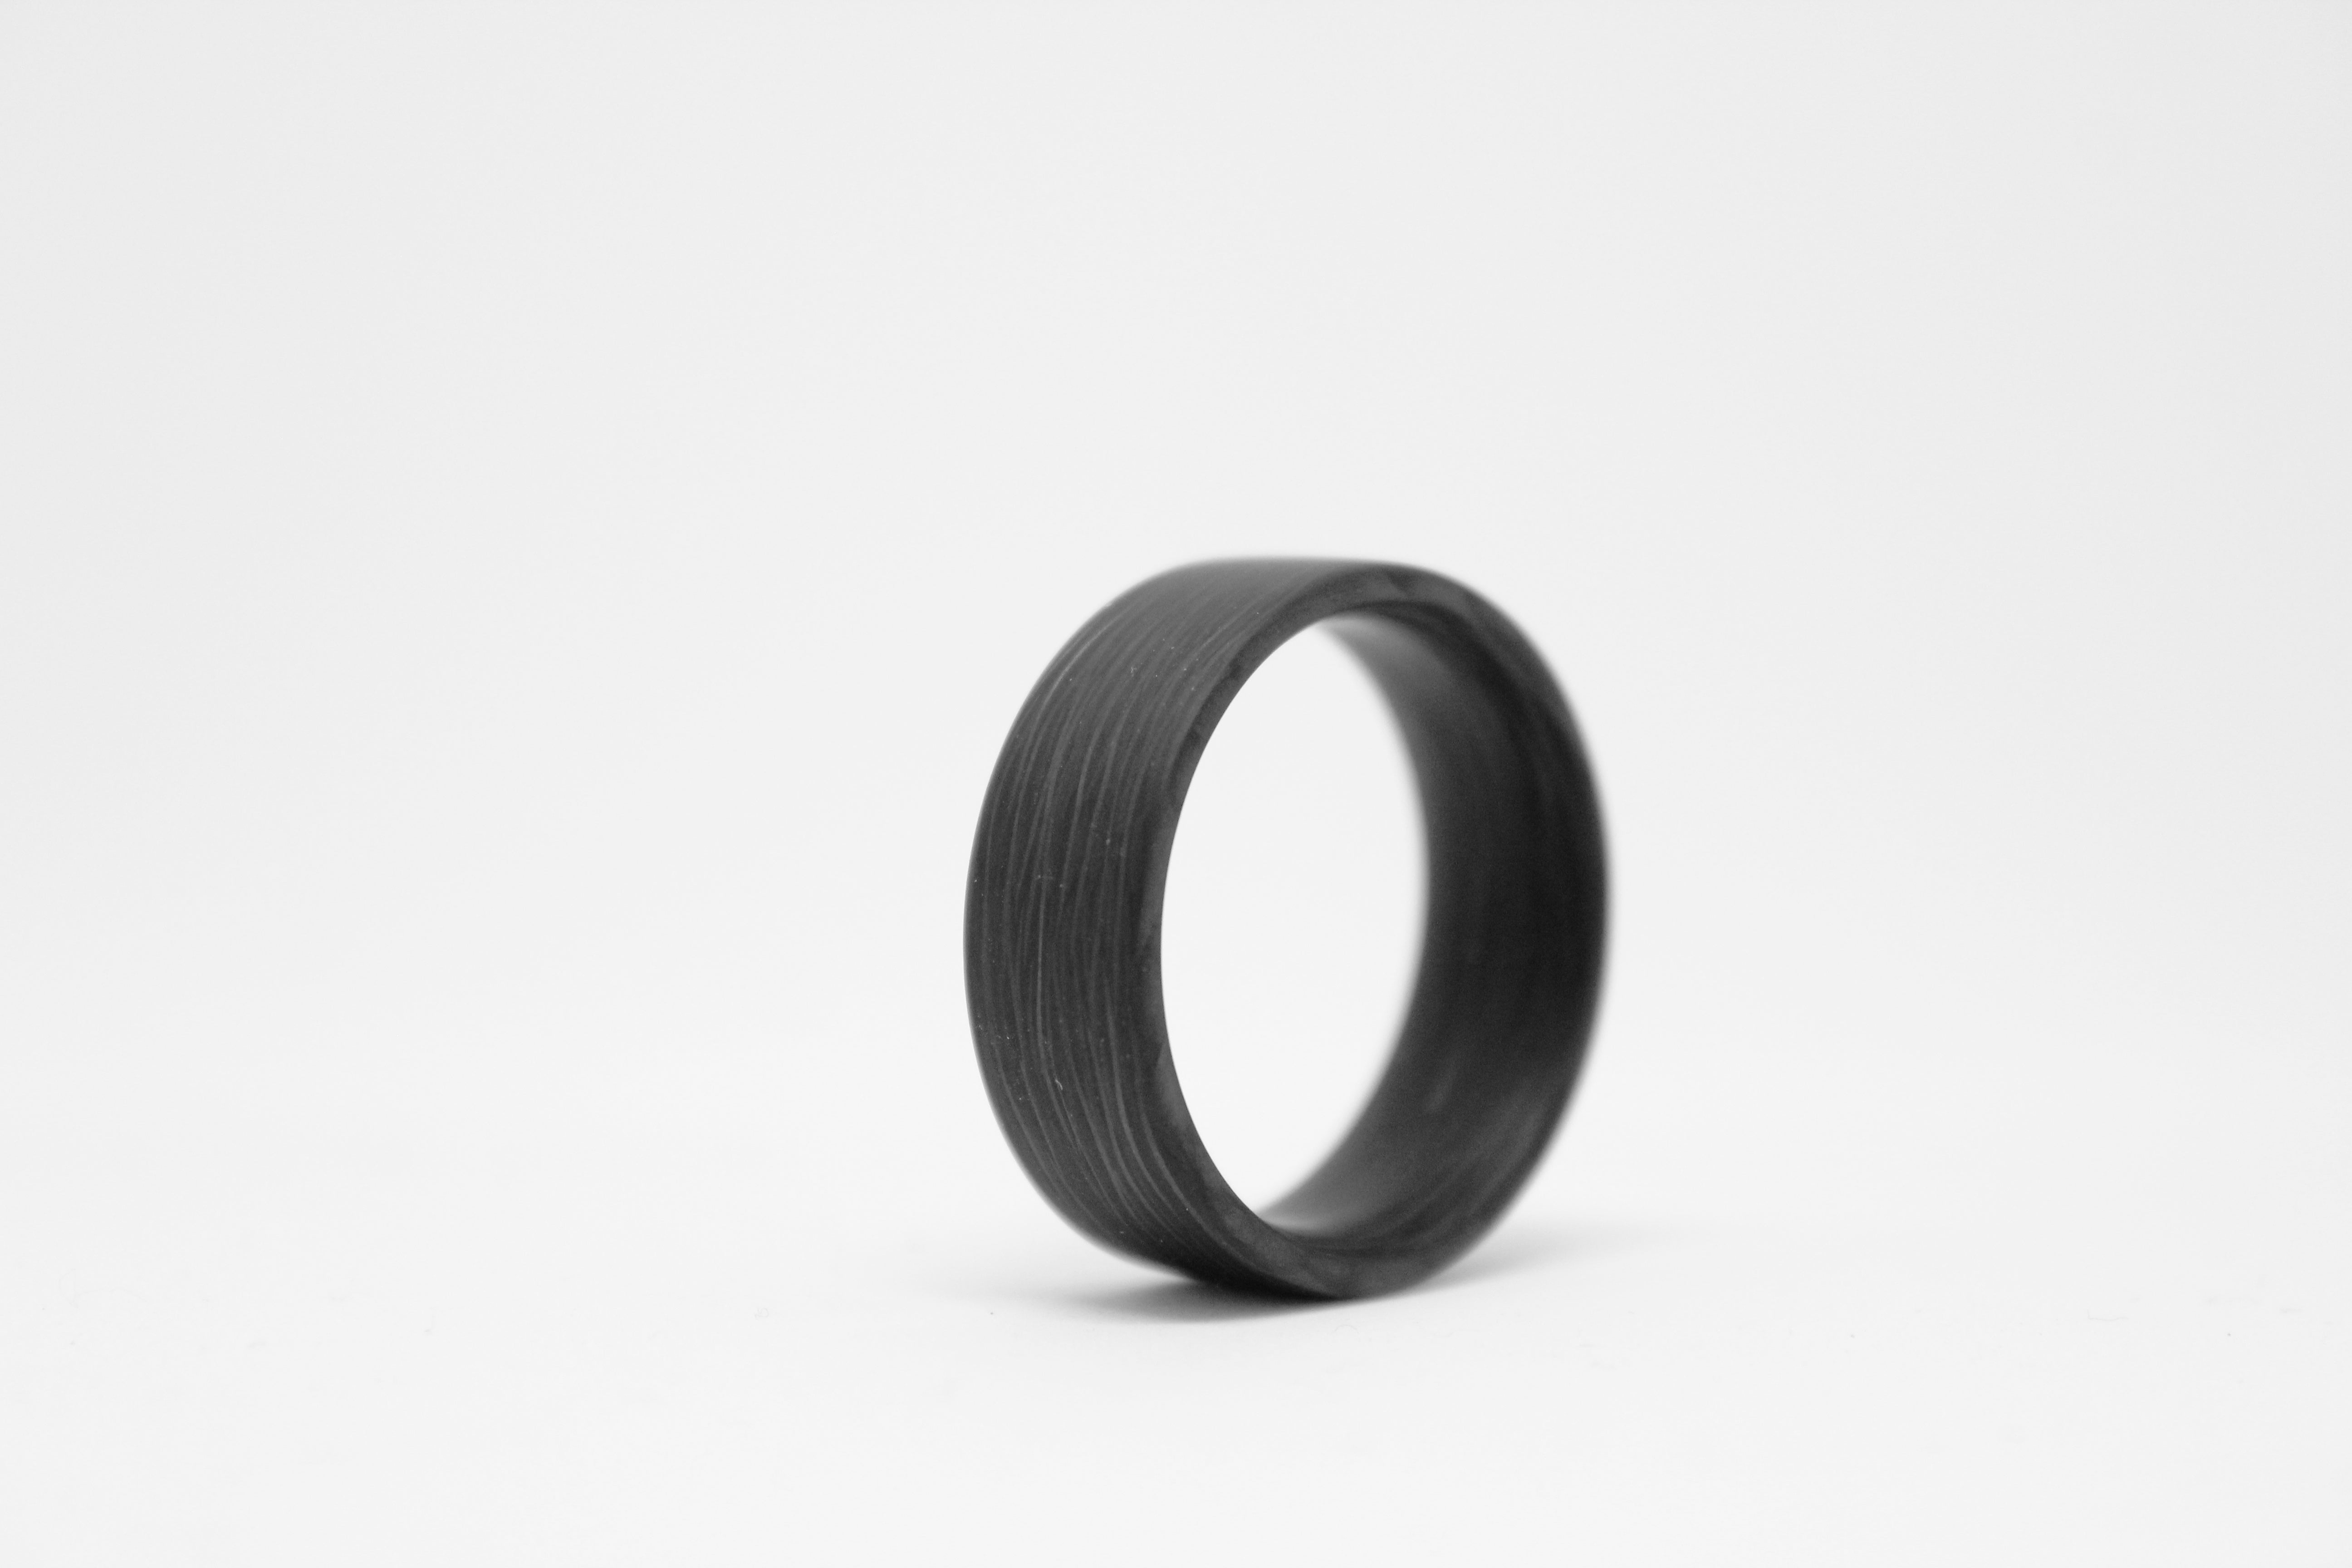 Size 13.5 Space X Carbon Fiber Ring